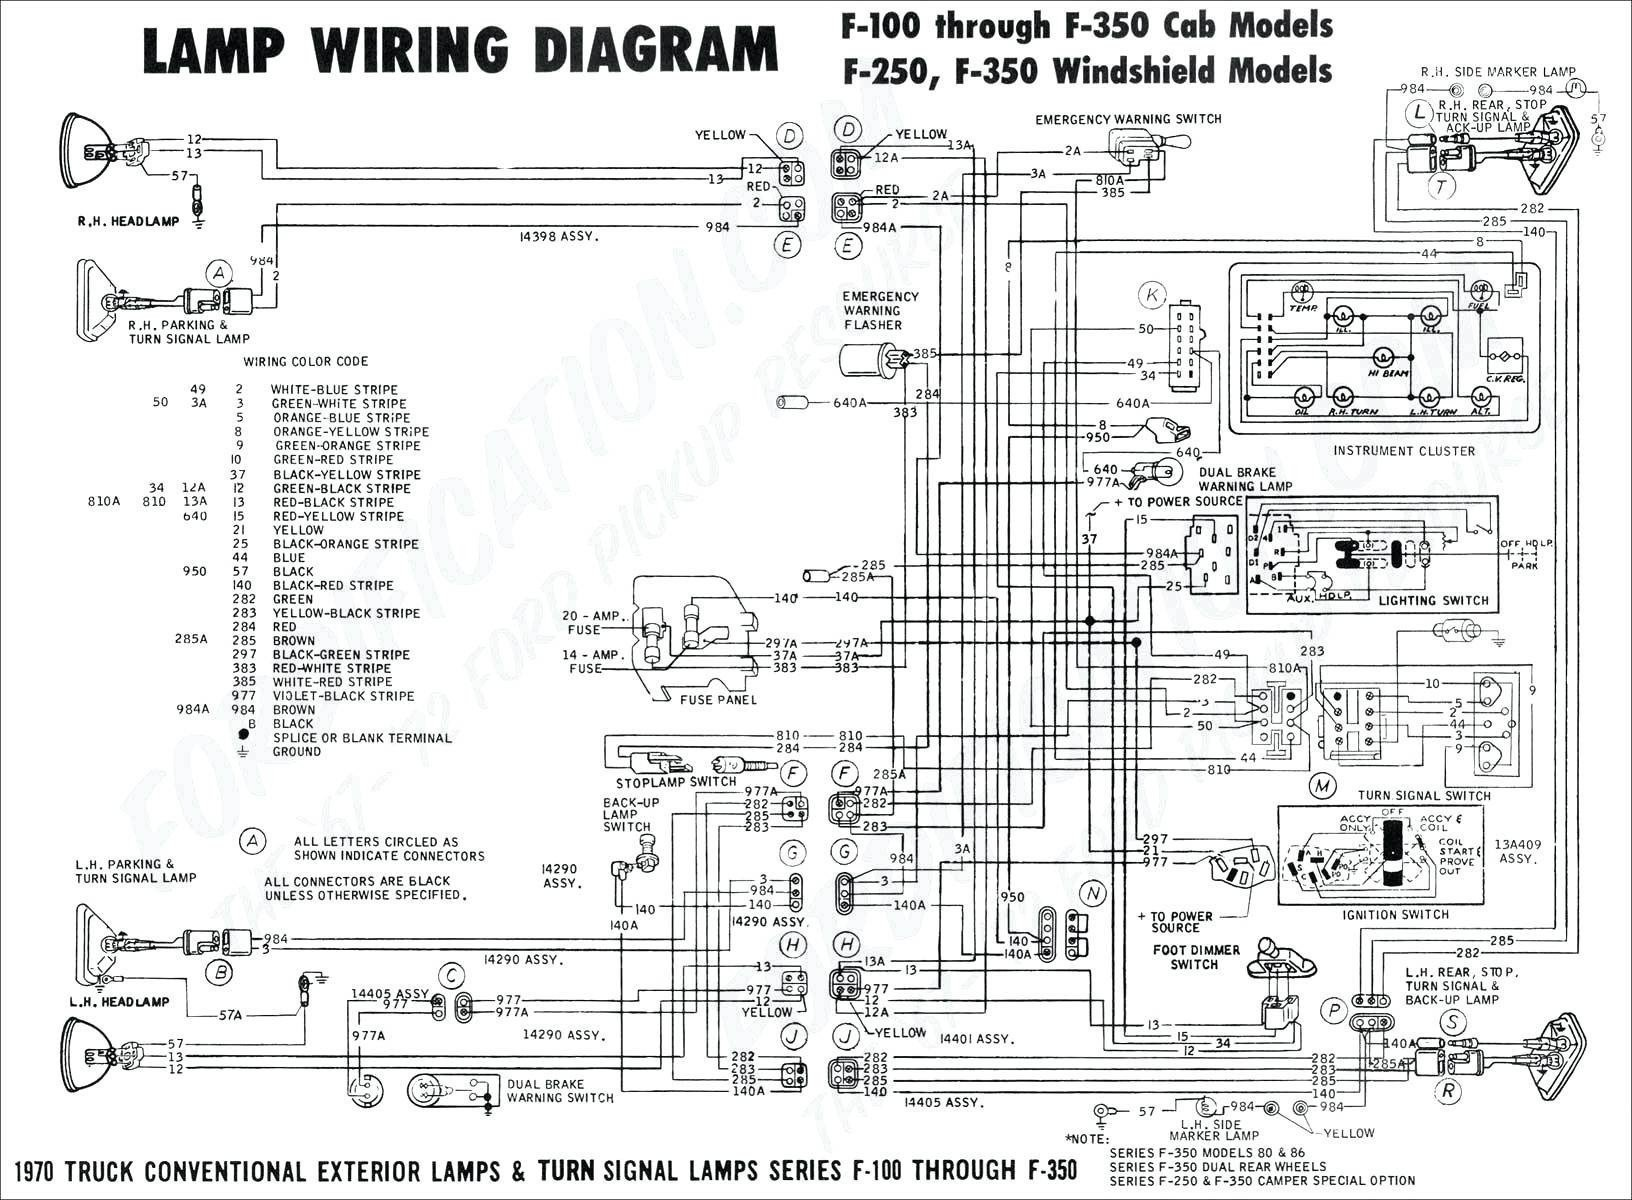 Gp11 Yale Forklift Wiring Schematic - Peavey Bass Guitar Wiring Diagram -  jeepe-jimny.sampwire.jeanjaures37.fr | Wiring Yale Diagram Glc135v |  | Wiring Diagram Resource